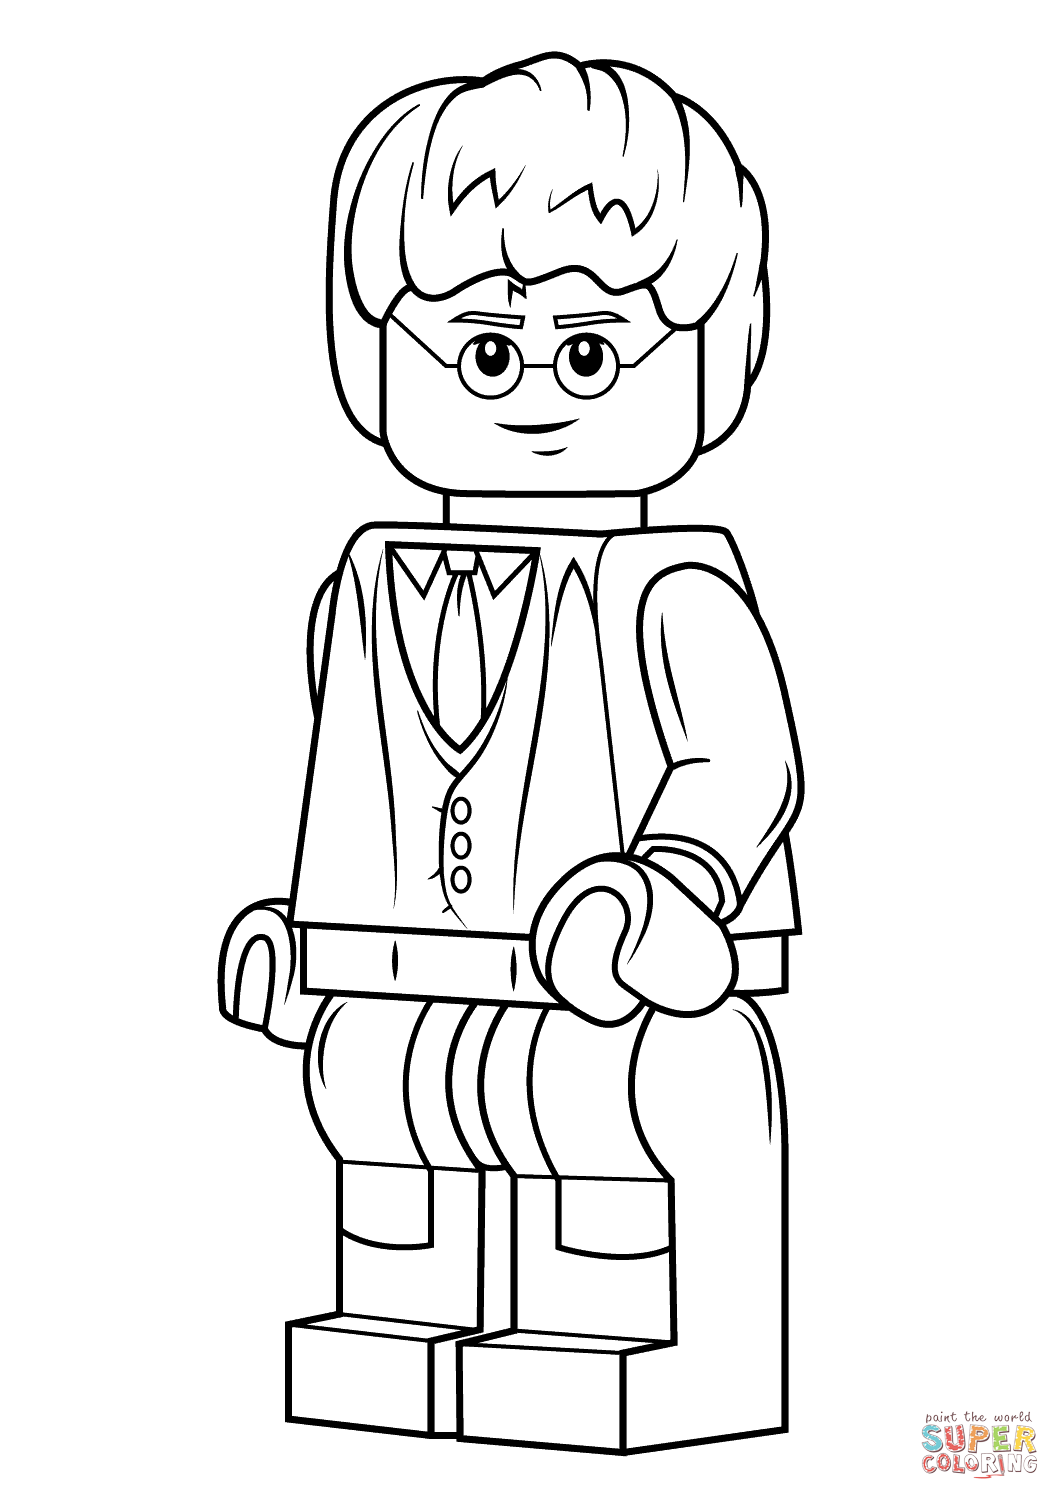 Lego Harry Potter Coloring Page Free Printable Coloring Pages